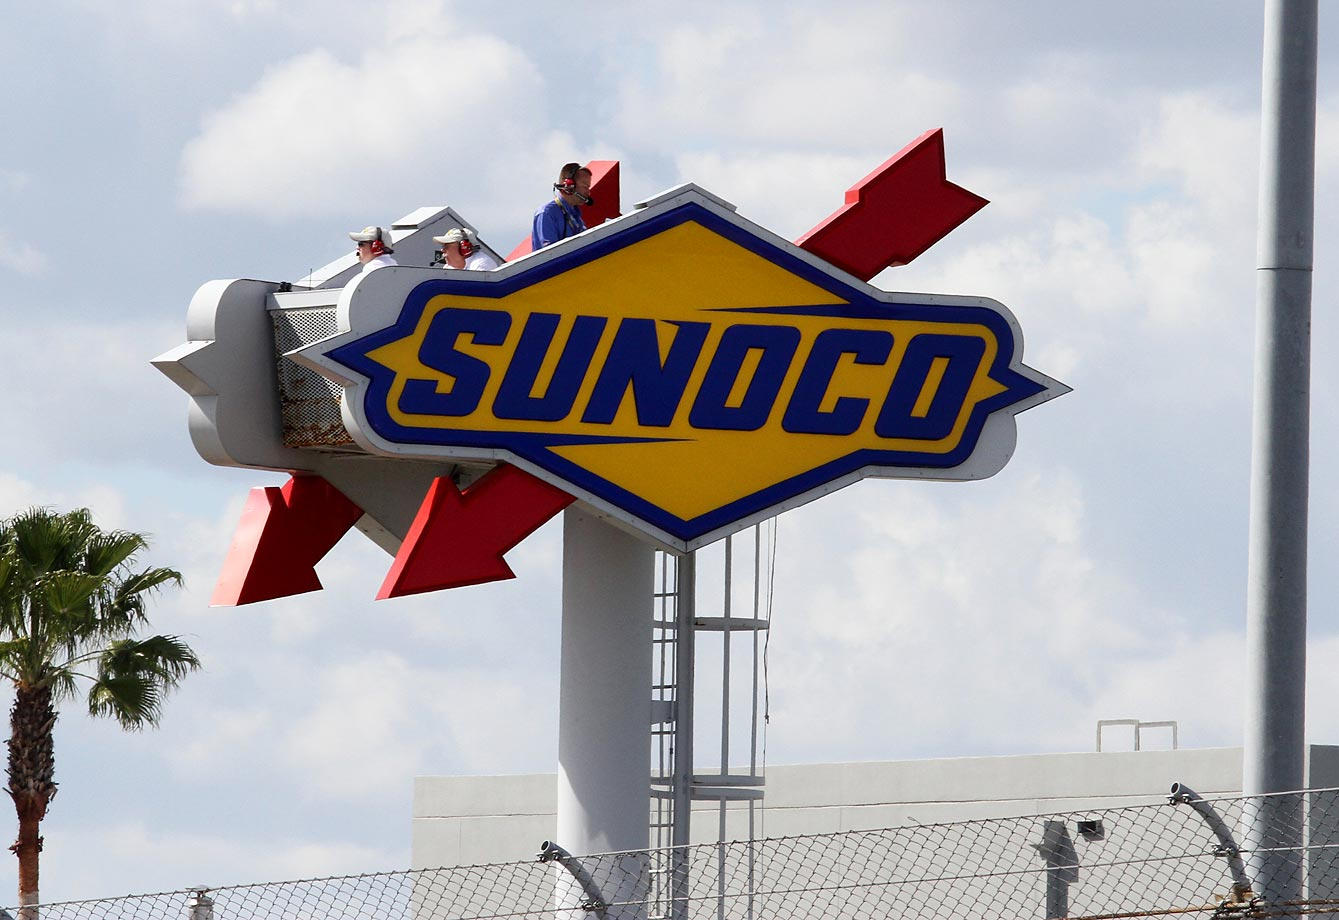 NASCAR officials and the MRN announcers atop the Sunoco sign during the NASCAR Sprint Cup Series Daytona 500 race.